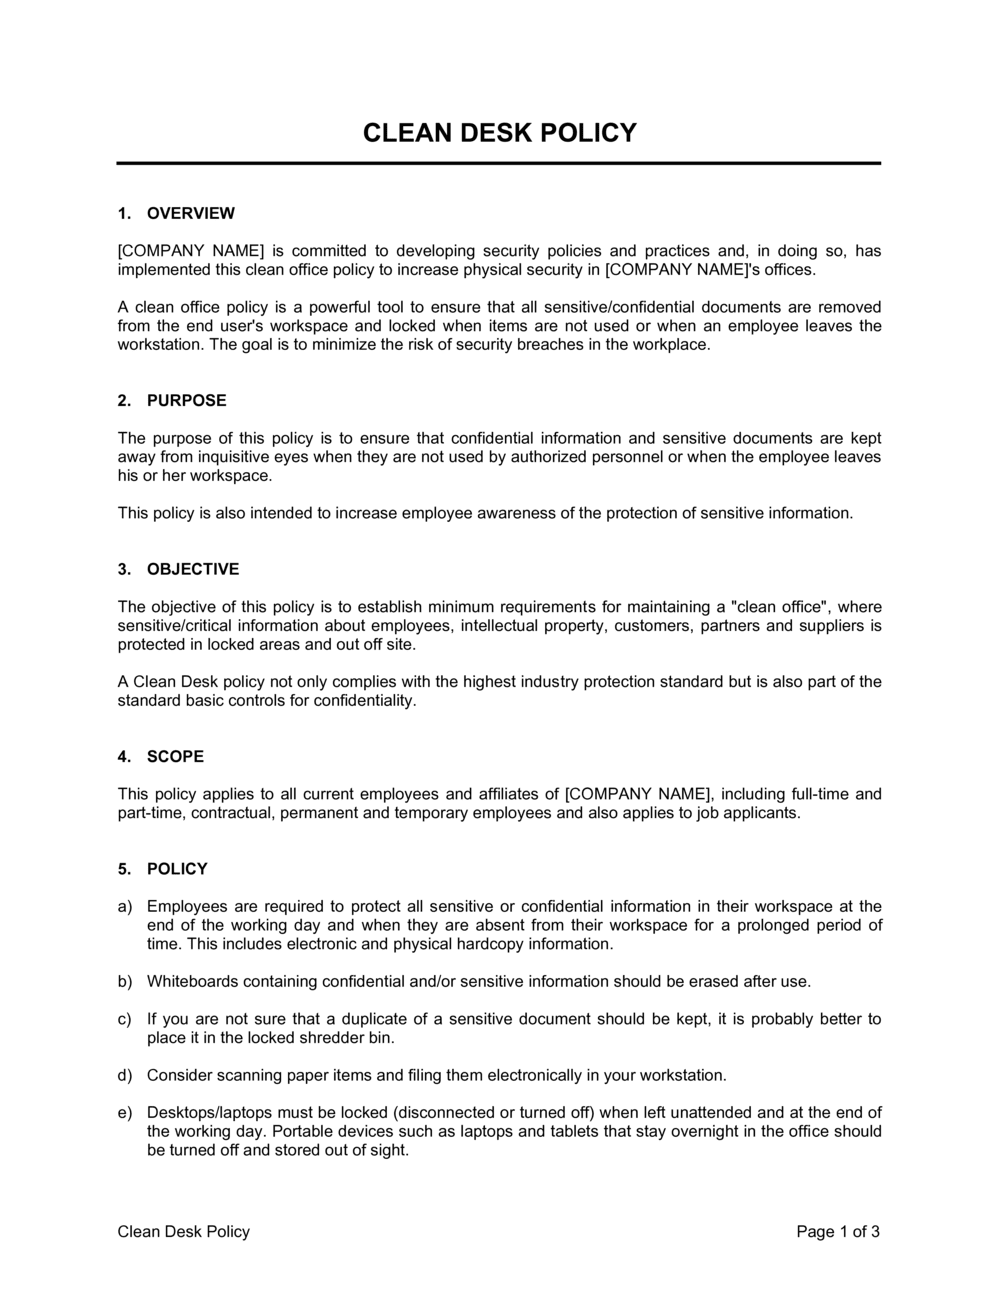 Business-in-a-Box's Clean Desk Policy Template